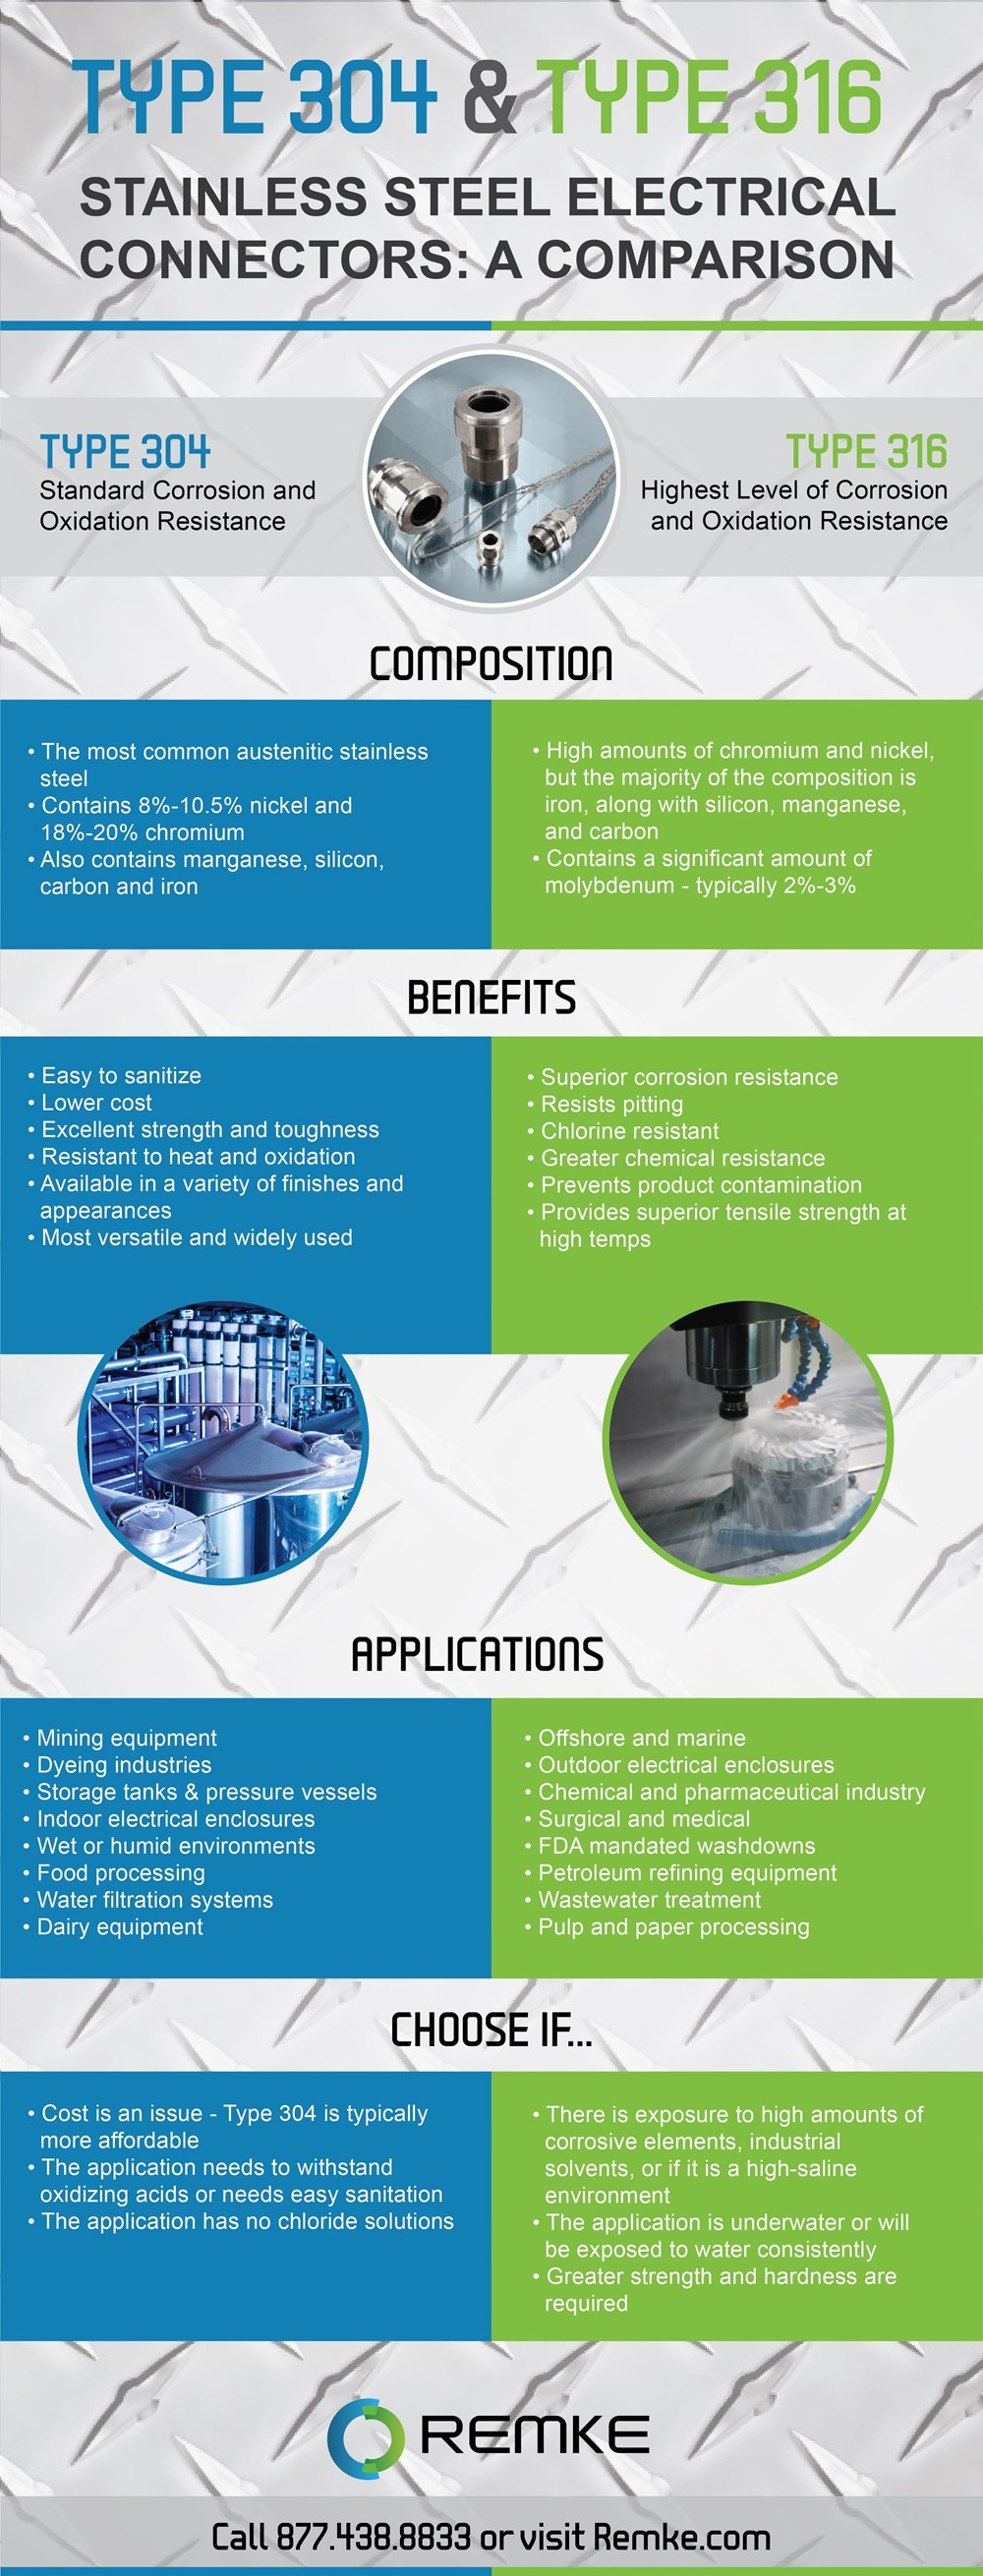 Compare Type 304 and 316 Stainless Steel Electrical Connectors in an Infographic - GO.Remke.com